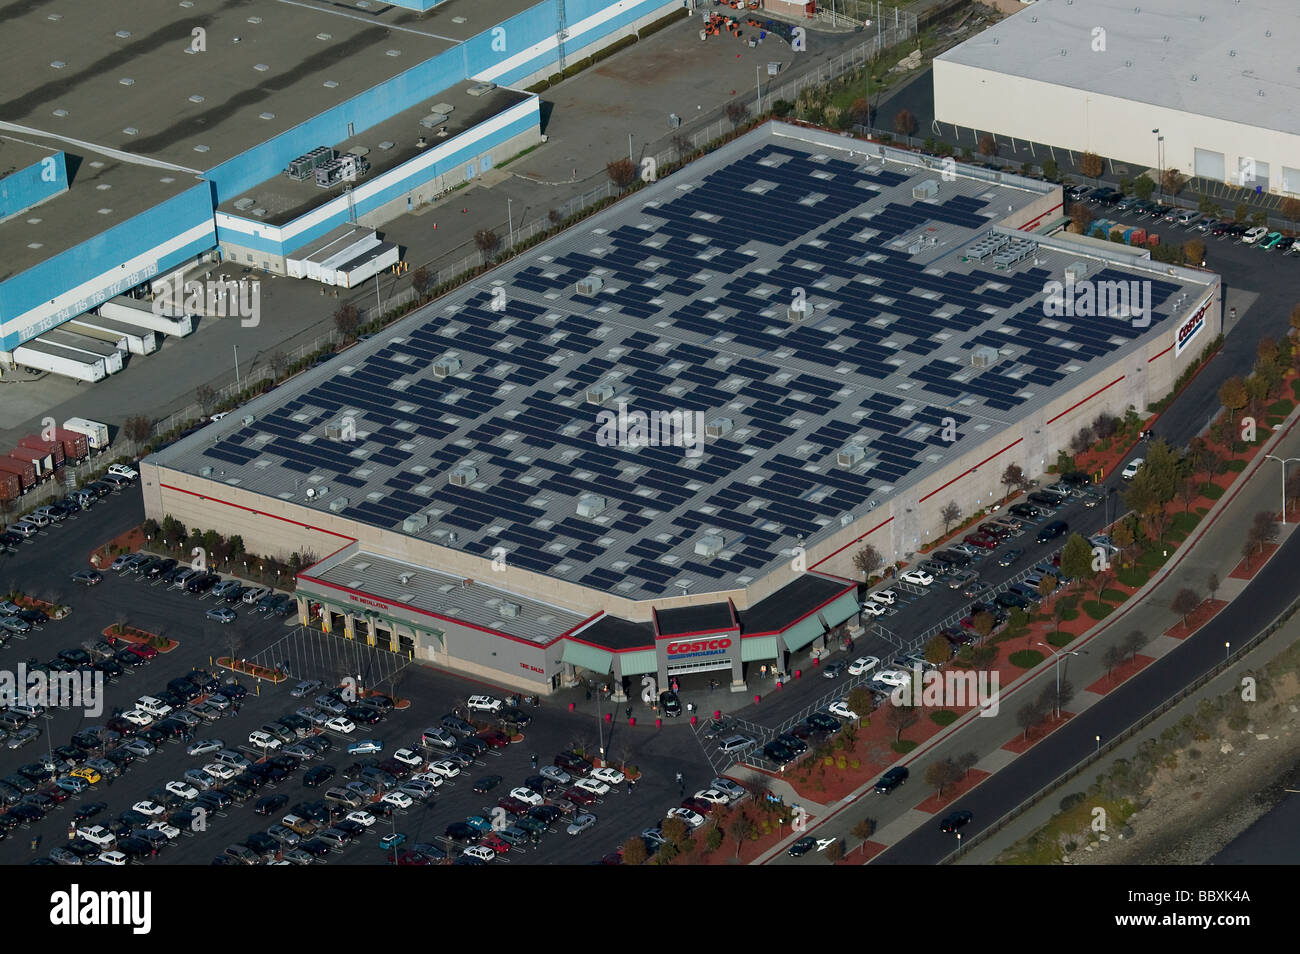 aerial view above solar power panels Costco warehouse rooftop Richmond California - Stock Image